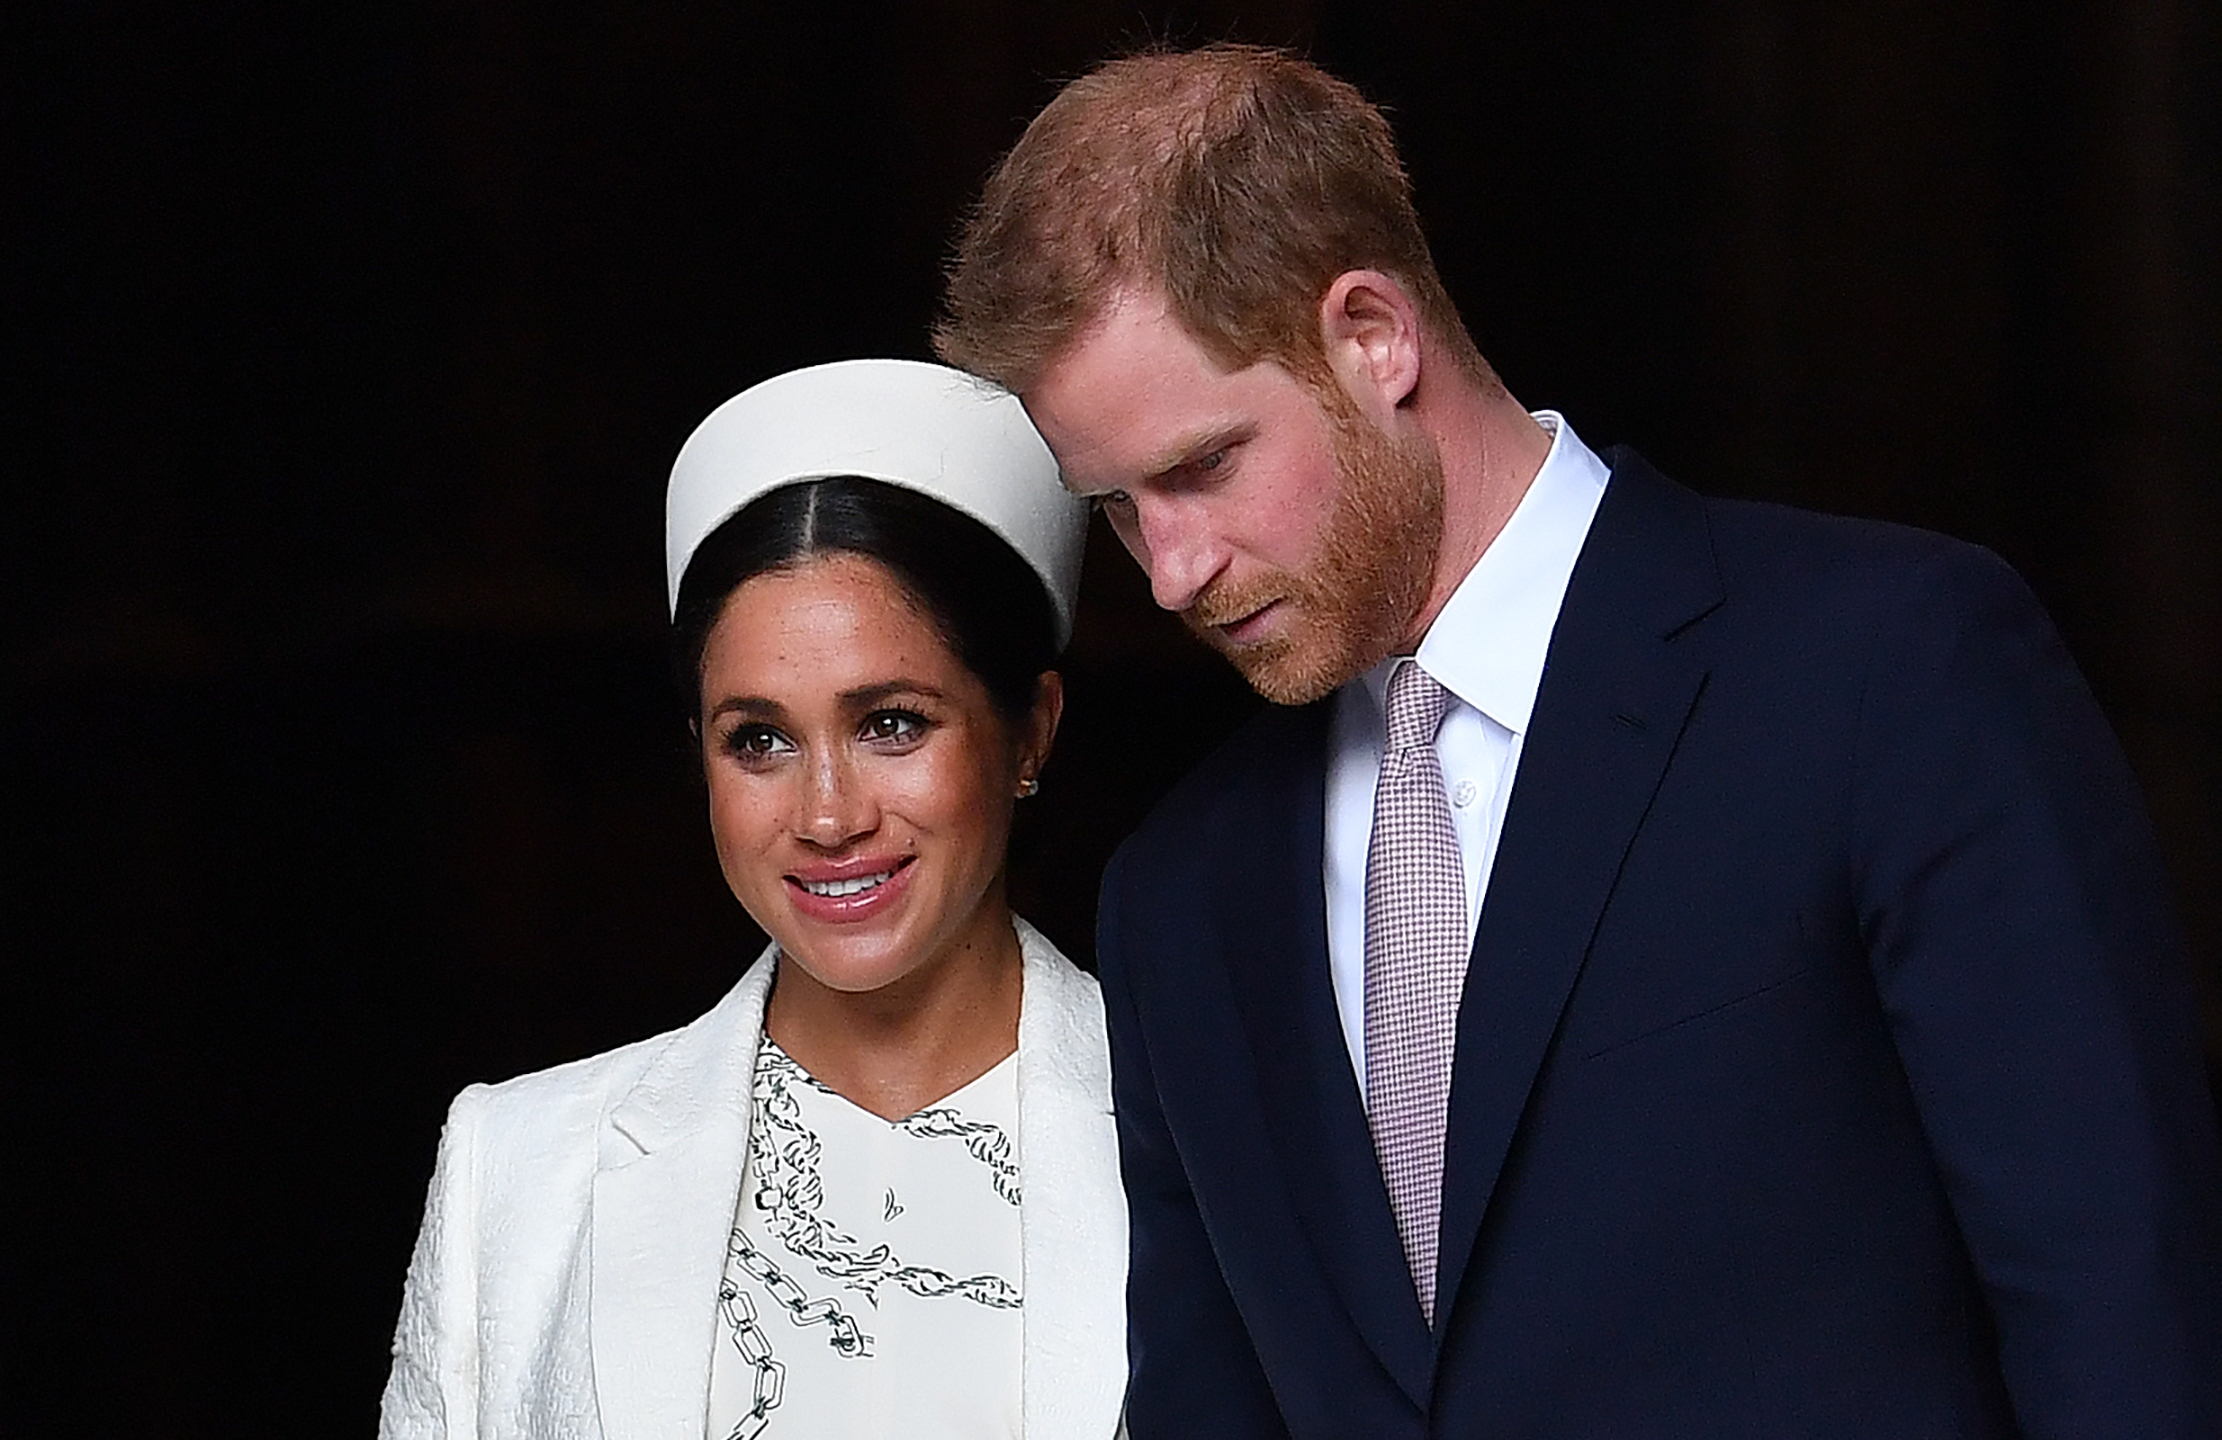 Britain's Prince Harry, Duke of Sussex and Meghan, Duchess of Sussex, leave after attending a Commonwealth Day Service at Westminster Abbey in central London on March 11, 2019. (Credit: BEN STANSALL/AFP/Getty Images)